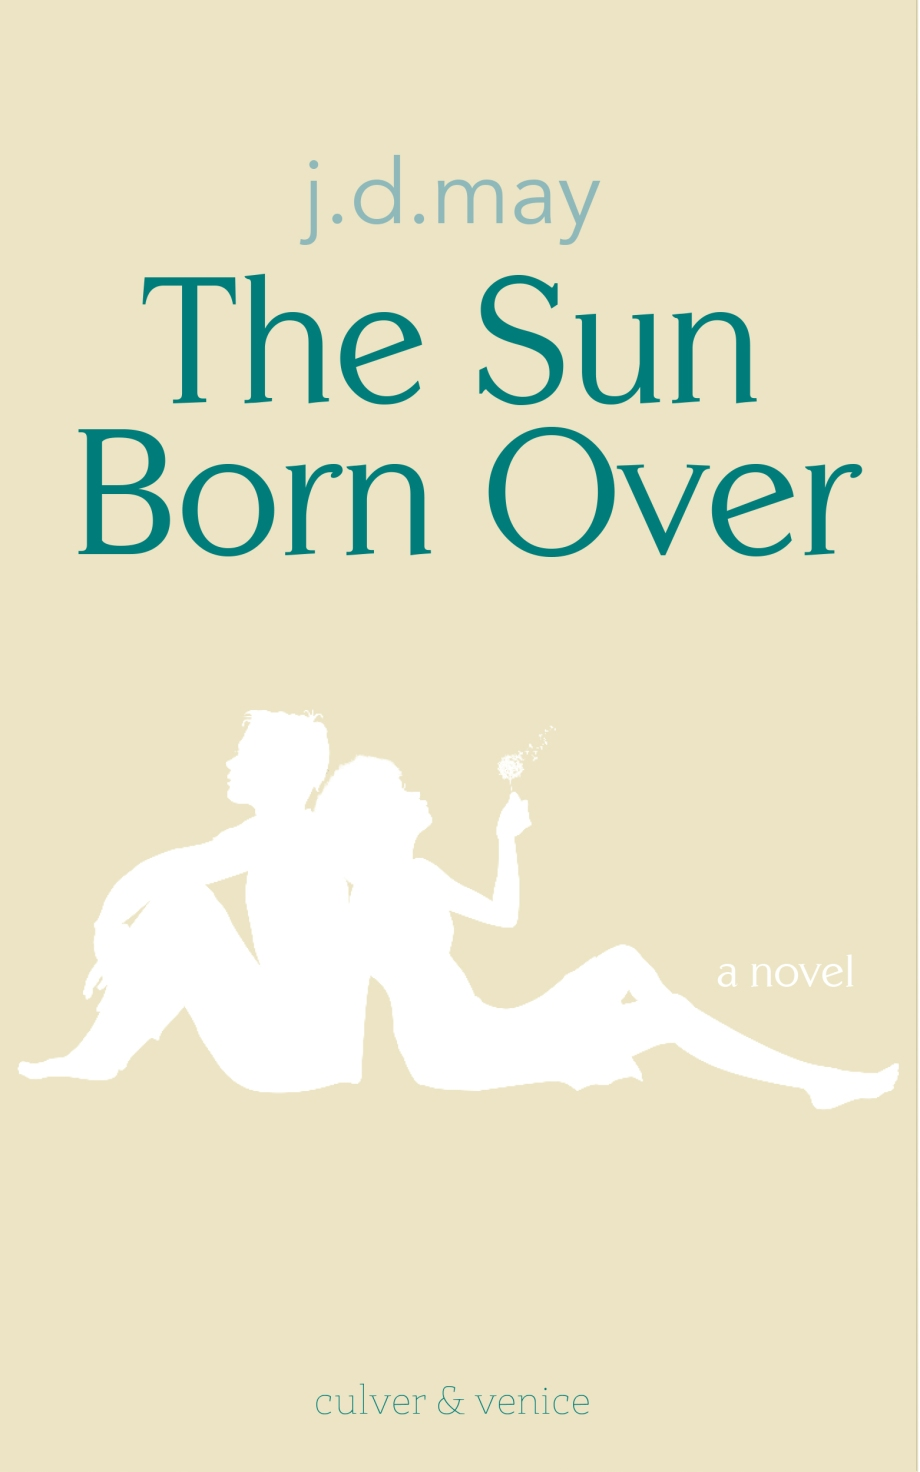 The Sun Born Over_j.d.may_culverandvenice_vr